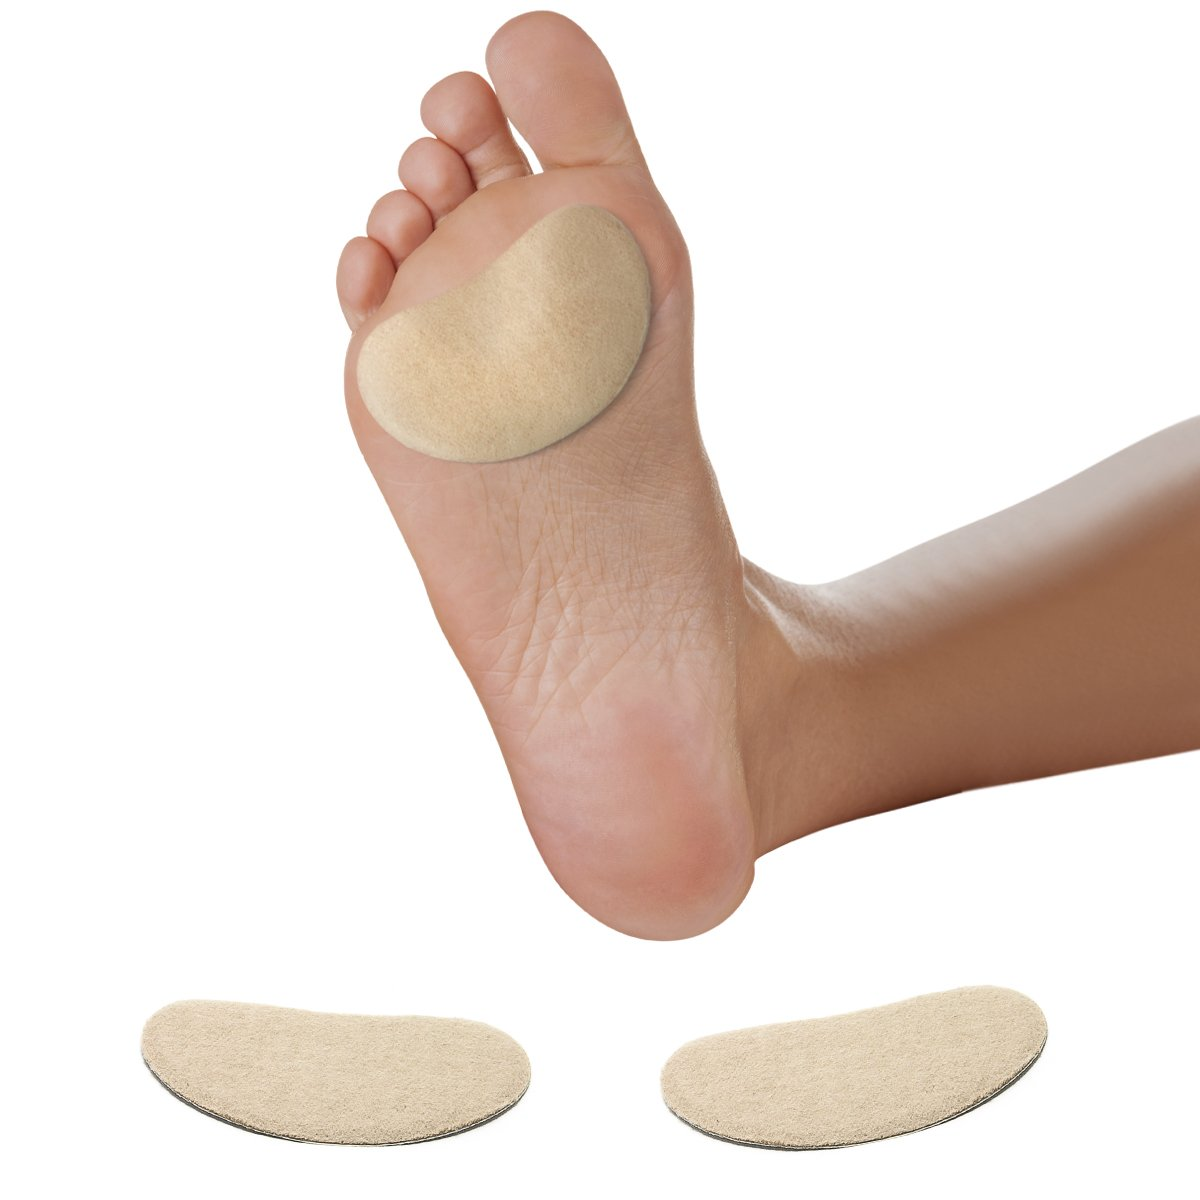 Premium Adhesive Moleskin Kidney Metatarsal Pads - Thin Low Profile Blister Prevention - 3'' Long - 100 Pieces by MARS WELLNESS